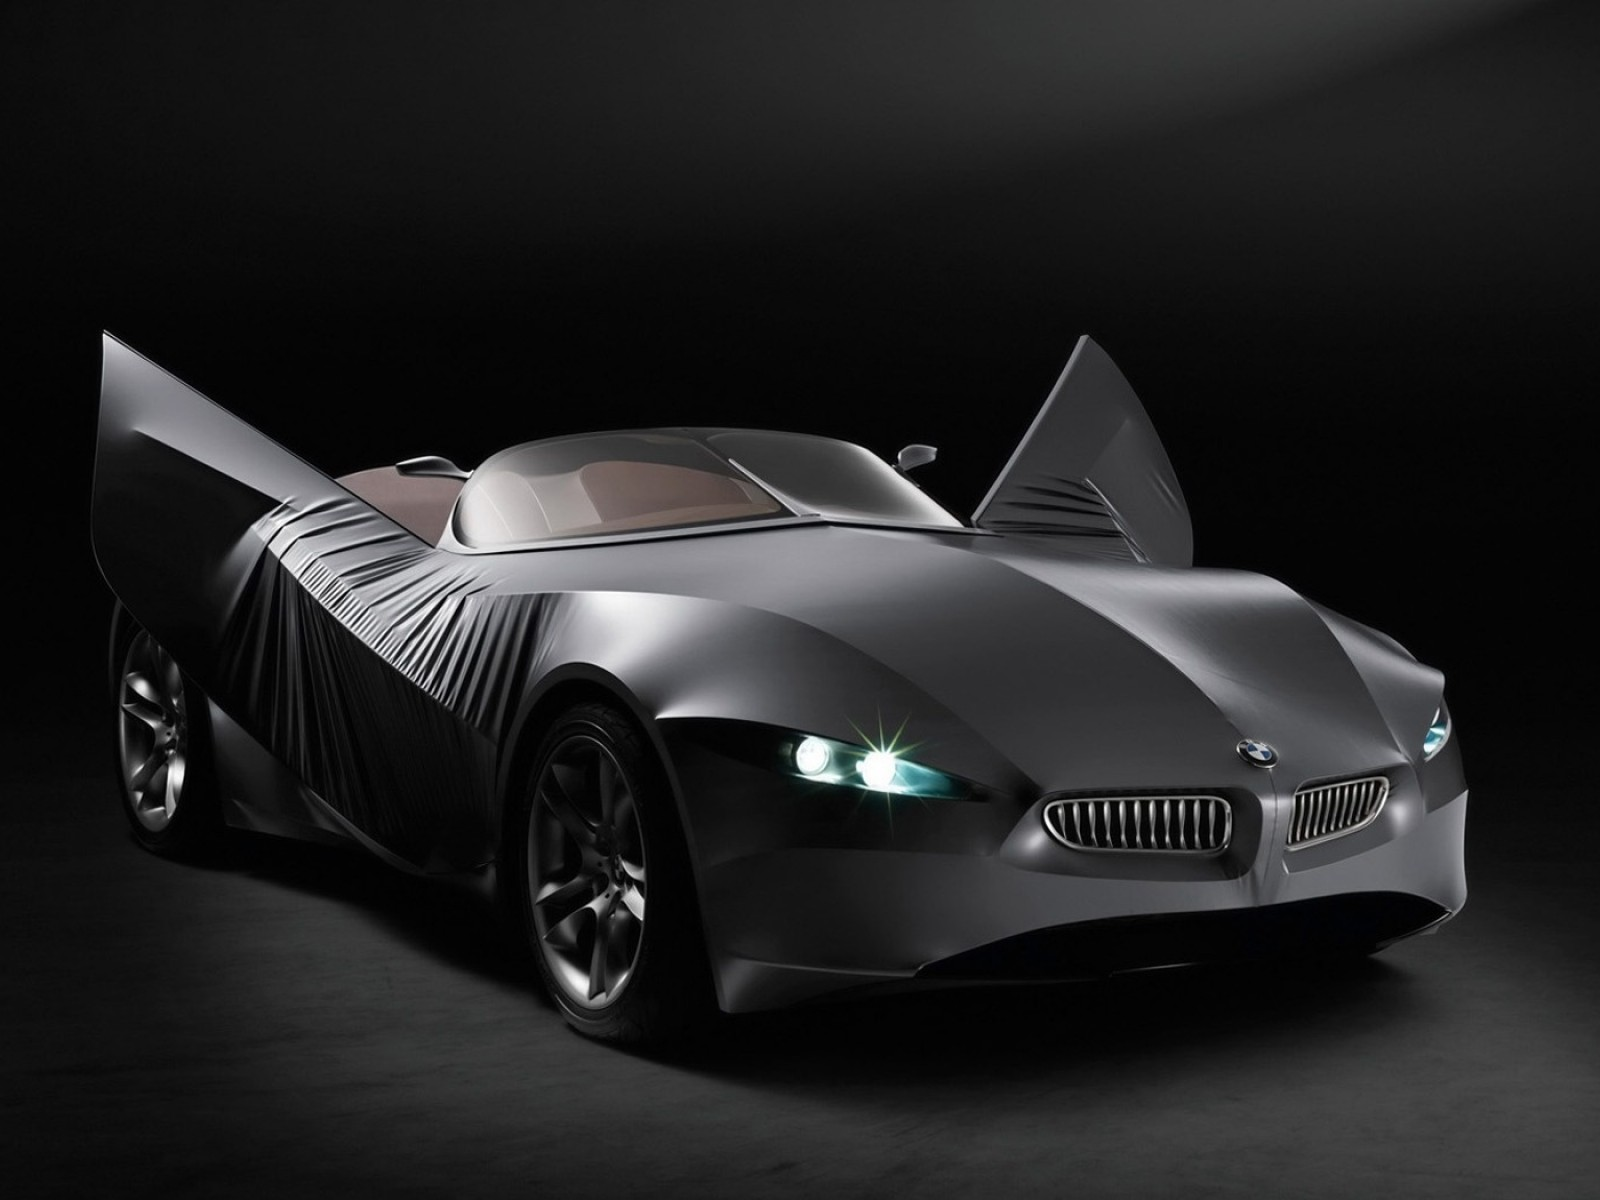 Cars HD Wallpapers Bmw Gina Concept Cars HD Wallpapers 1600x1200